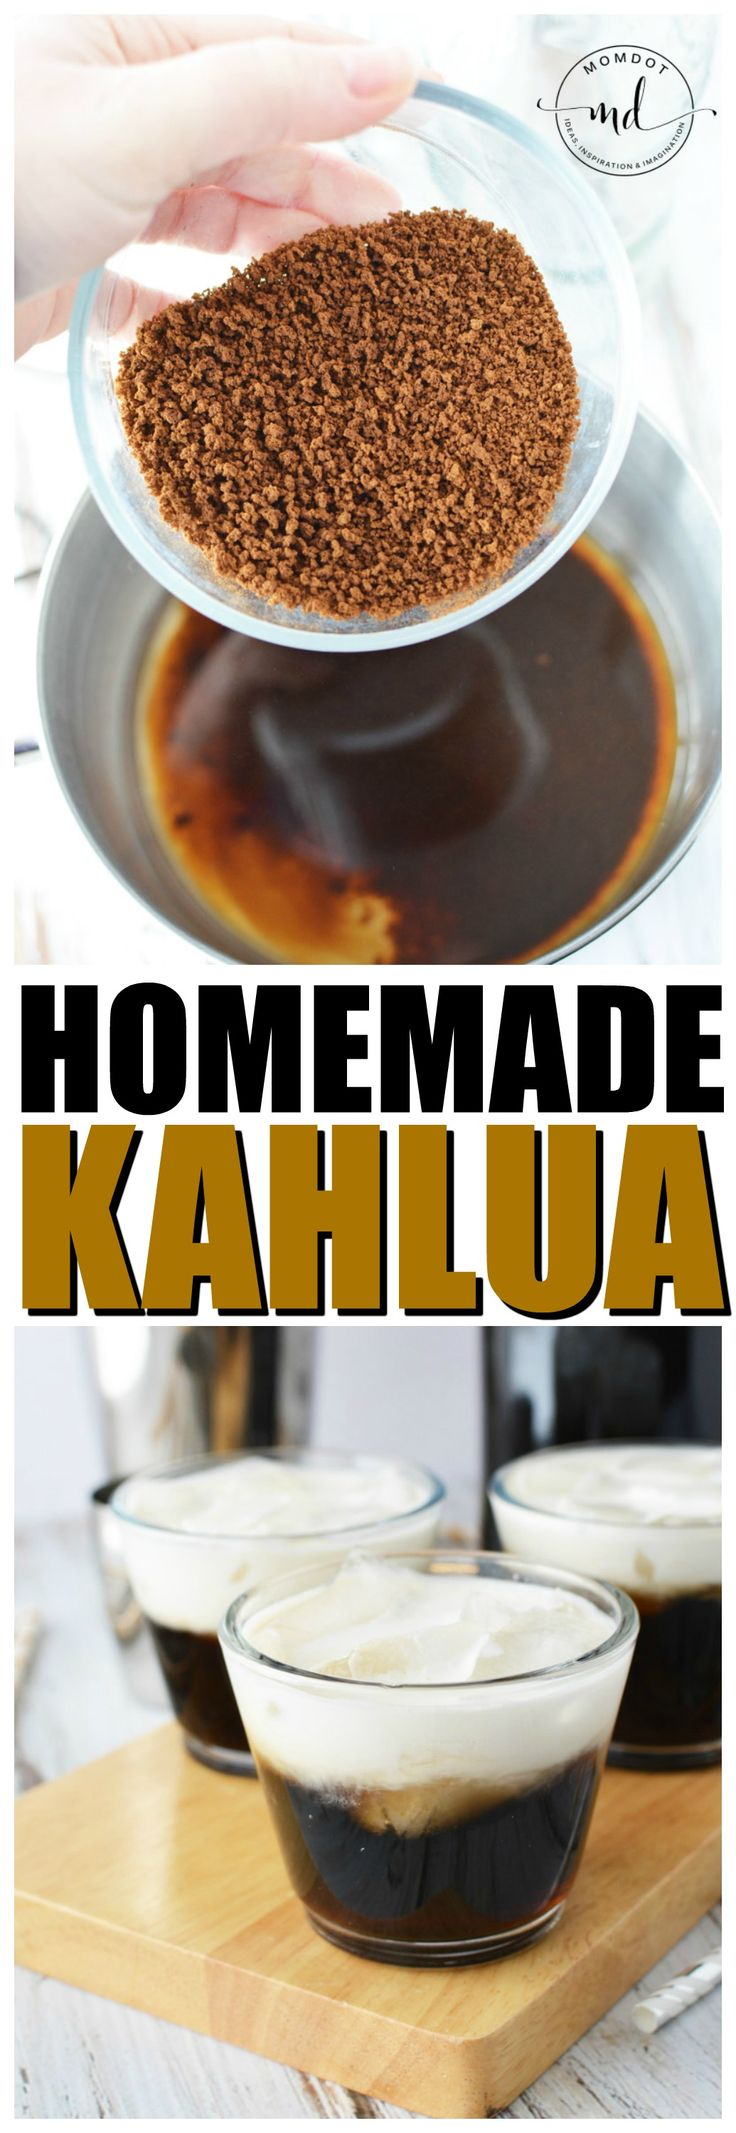 With this Homemade Kahlua recipe, you can learn how to make your Own Coffee Liqueur with Vanilla Beans, fresh brewed coffee and vodka. Once you see how easy is to learn how to make Kahlua, you will never buy it again! #kahlua #alcohol #recipe #diy #liquor